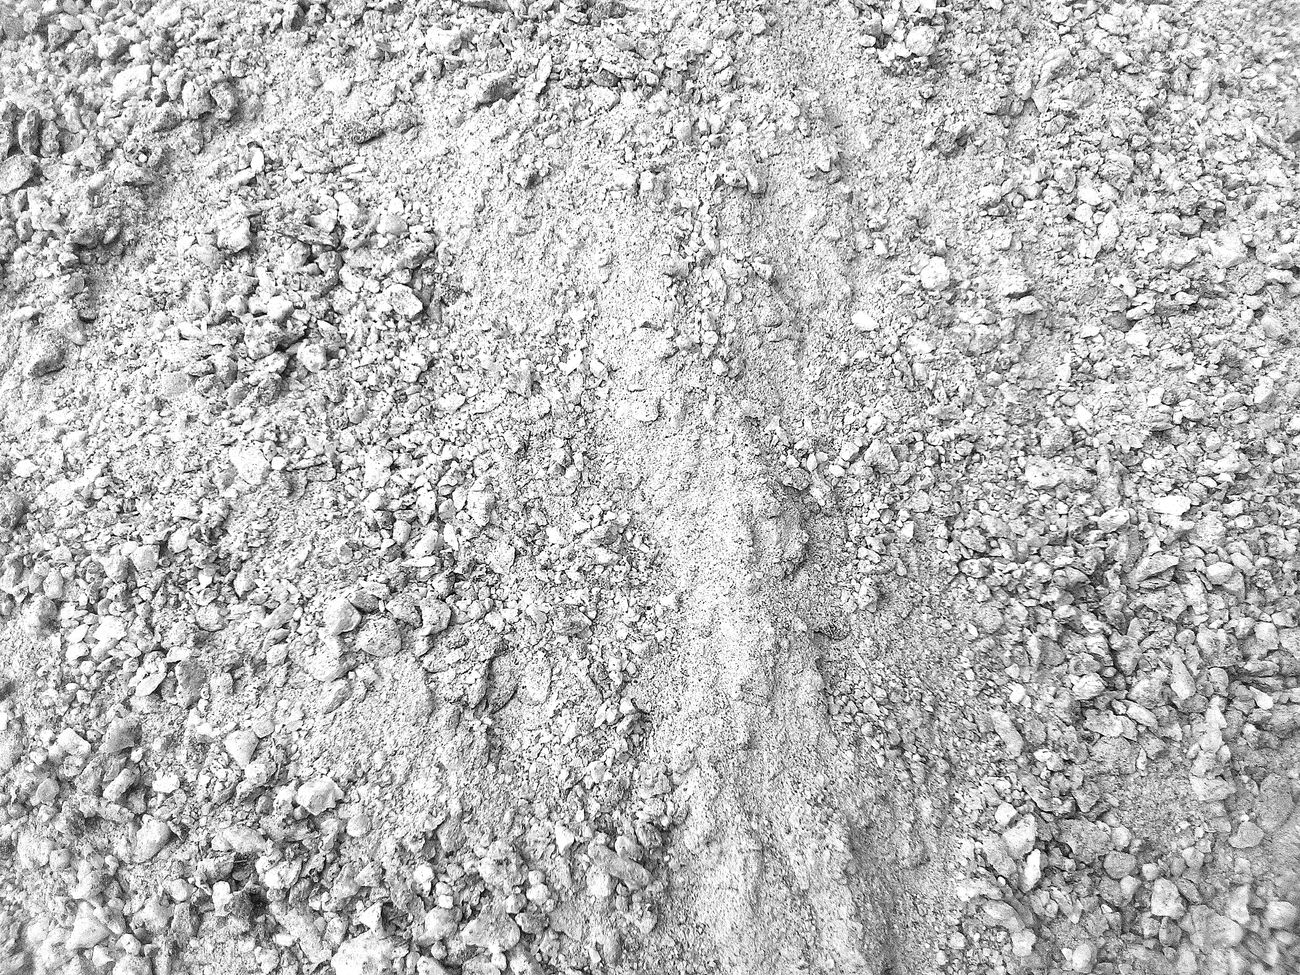 Backgrounds Full Frame Textured  Pattern Close-up Day No People Sand Outdoors Nature Beach Sands Abstract Photography Abstract Pattern, Texture, Shape And Form Grains Of Sand Blackandwhite Blackandwhite Photography Black And White Photography Focus On Foreground,shallow Focus Mobilephotography Bangaloredairies Outdoor Photography Textured  Pattern, Texture, Shape And Form Mobile Photography